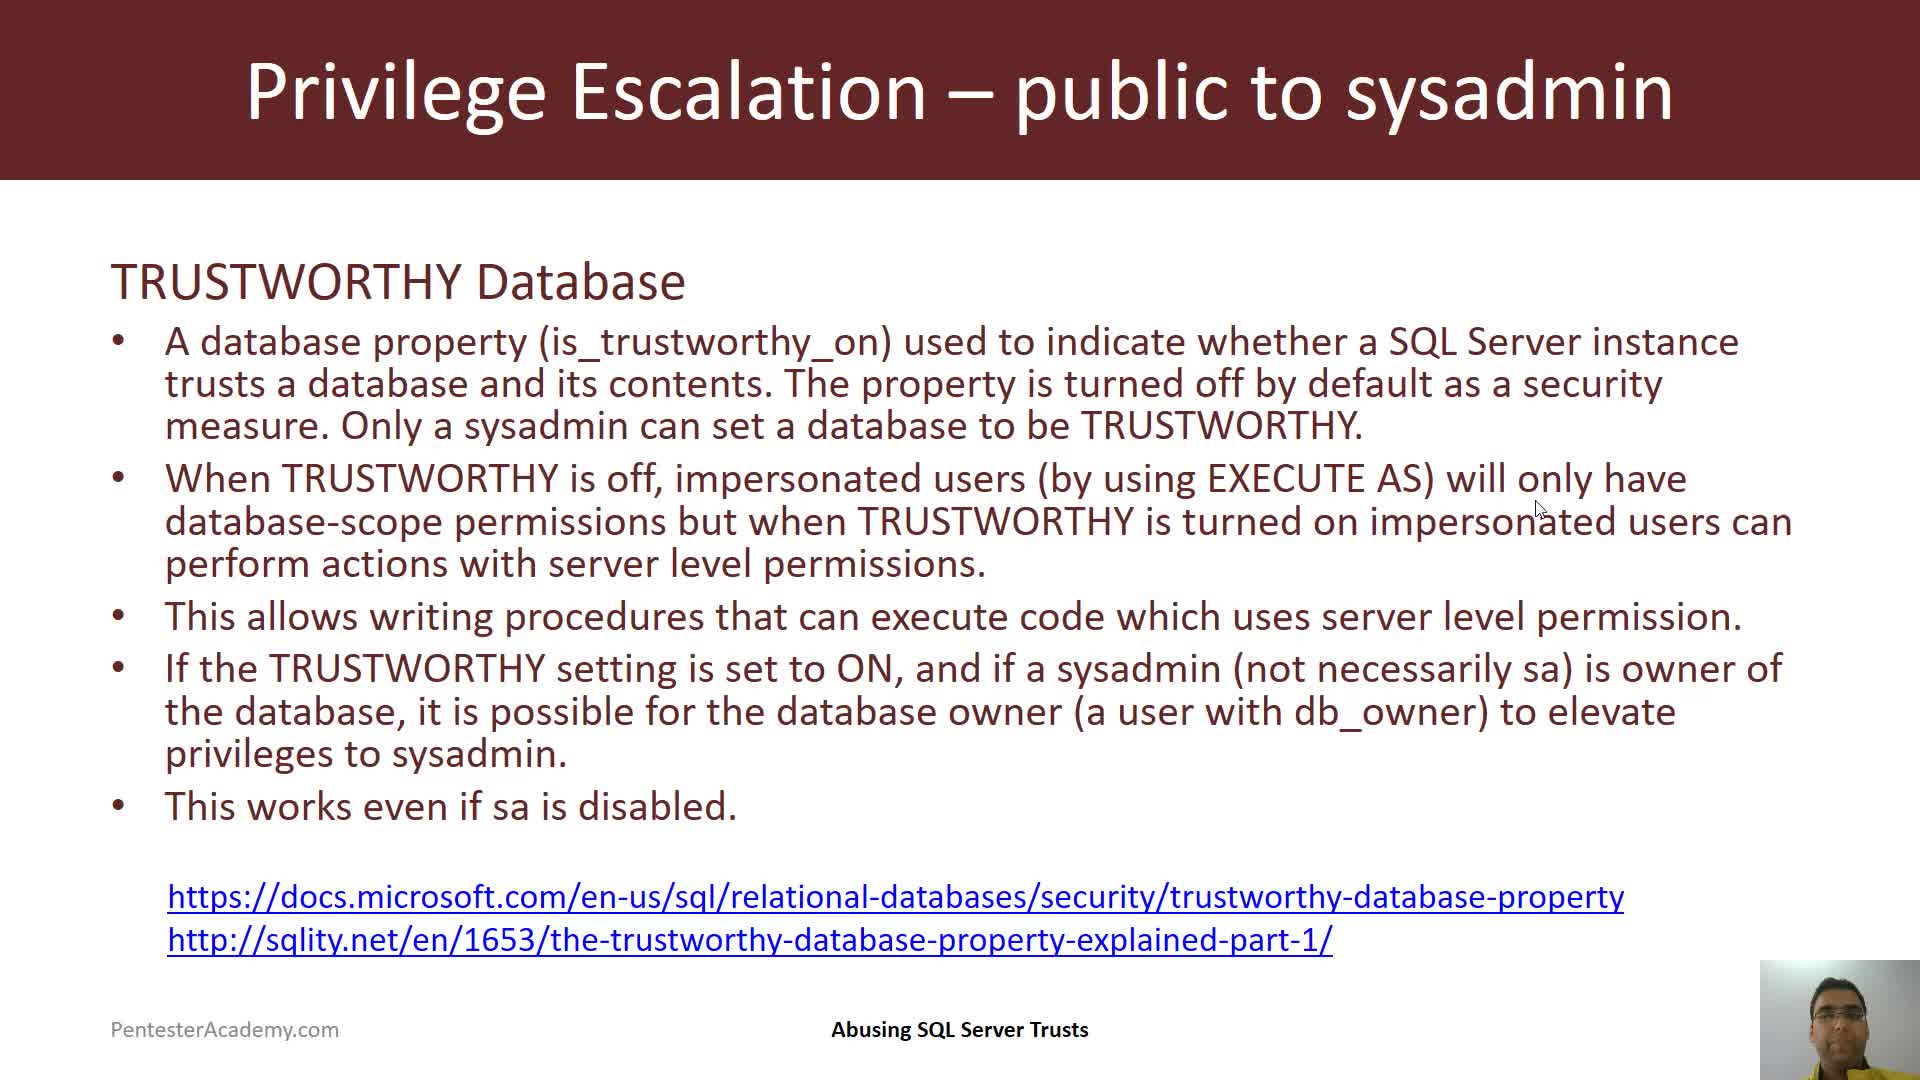 Privilege Escalation: Trustworthy Property